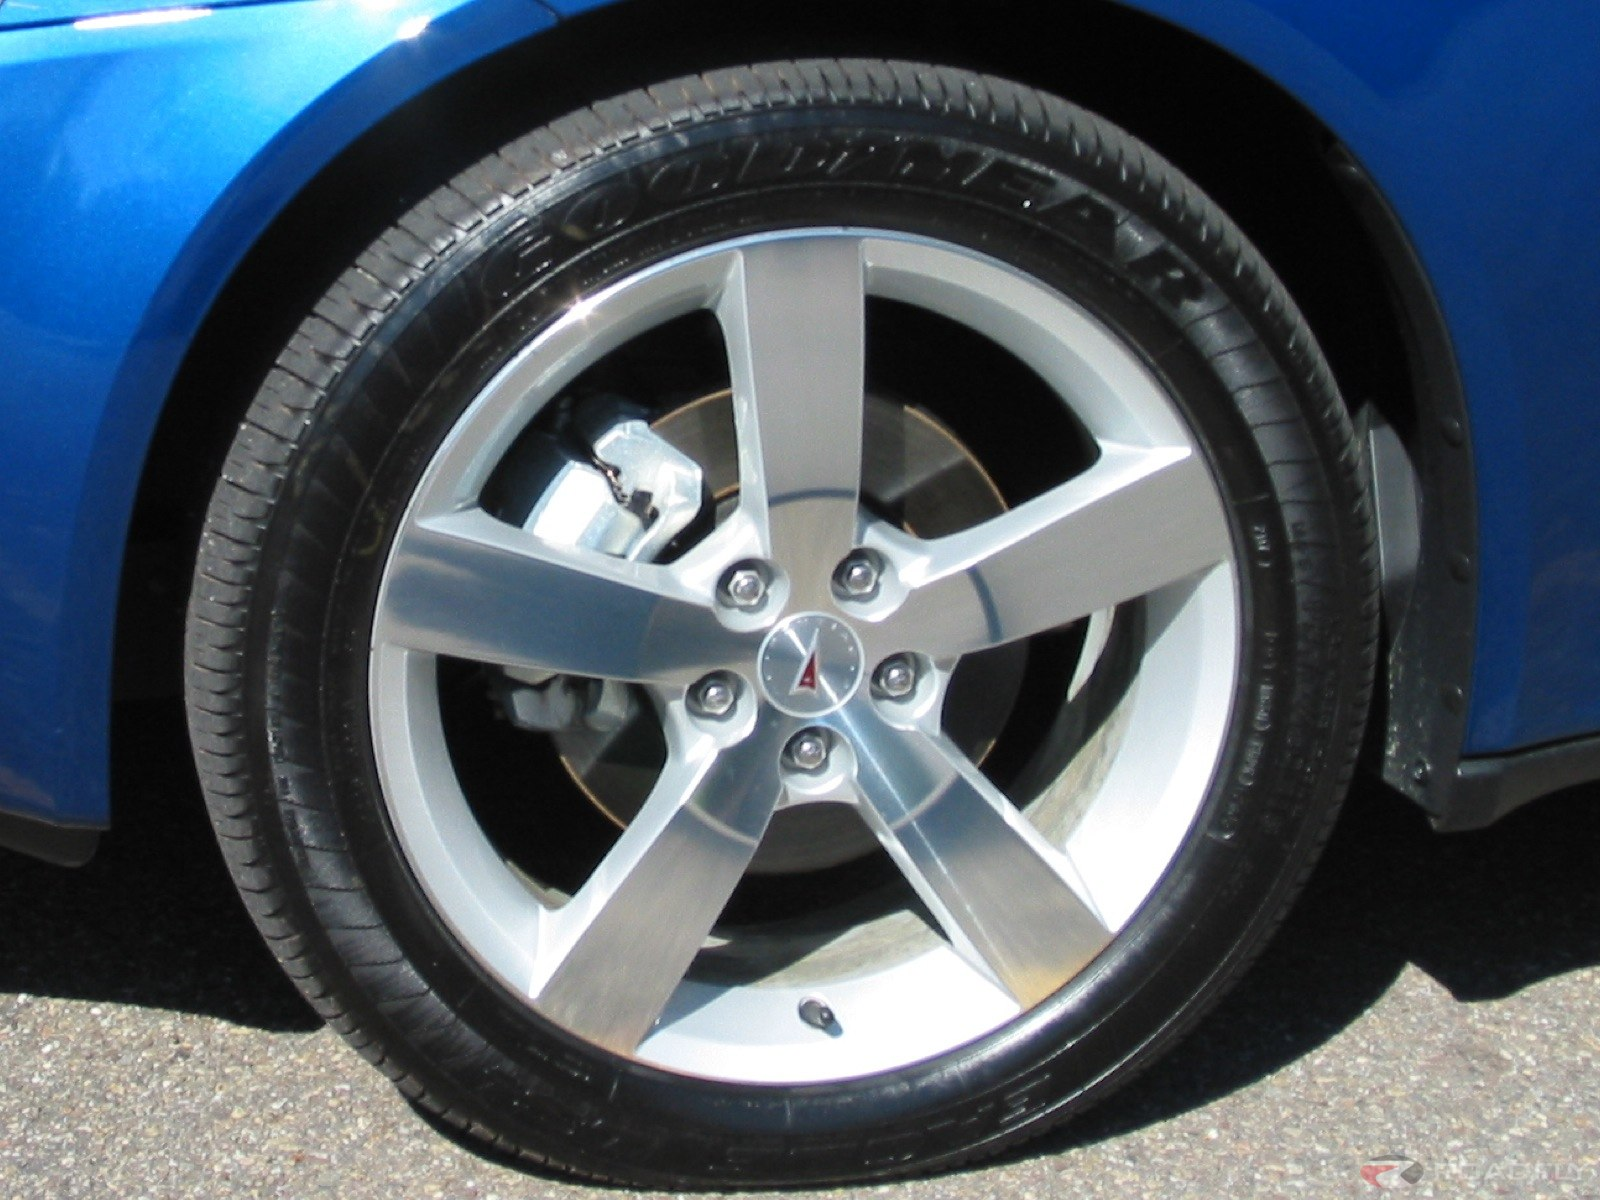 Pontiac G6 wheels #2